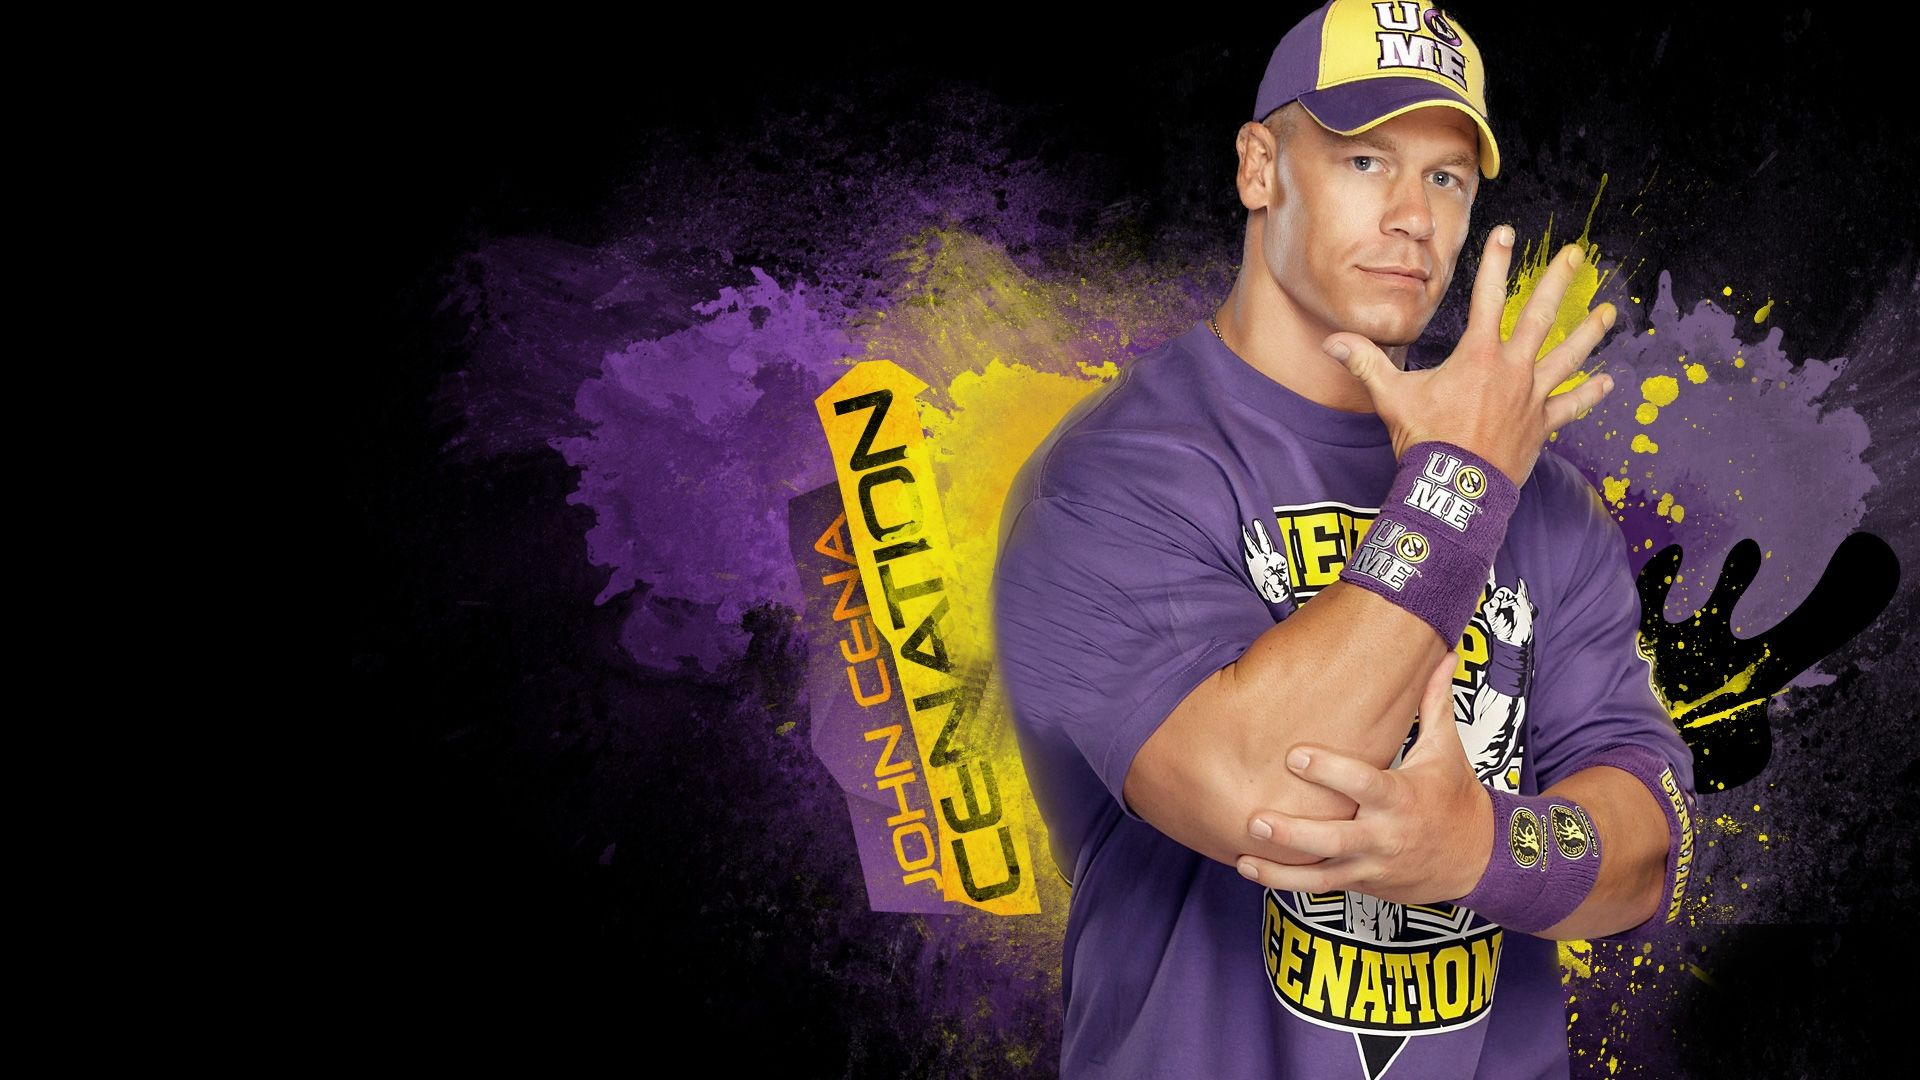 Undefined John Cena Hd Images Wallpapers 65 Wallpapers Adorable Wallpapers John Cena Pictures John Cena Wwe Wallpapers